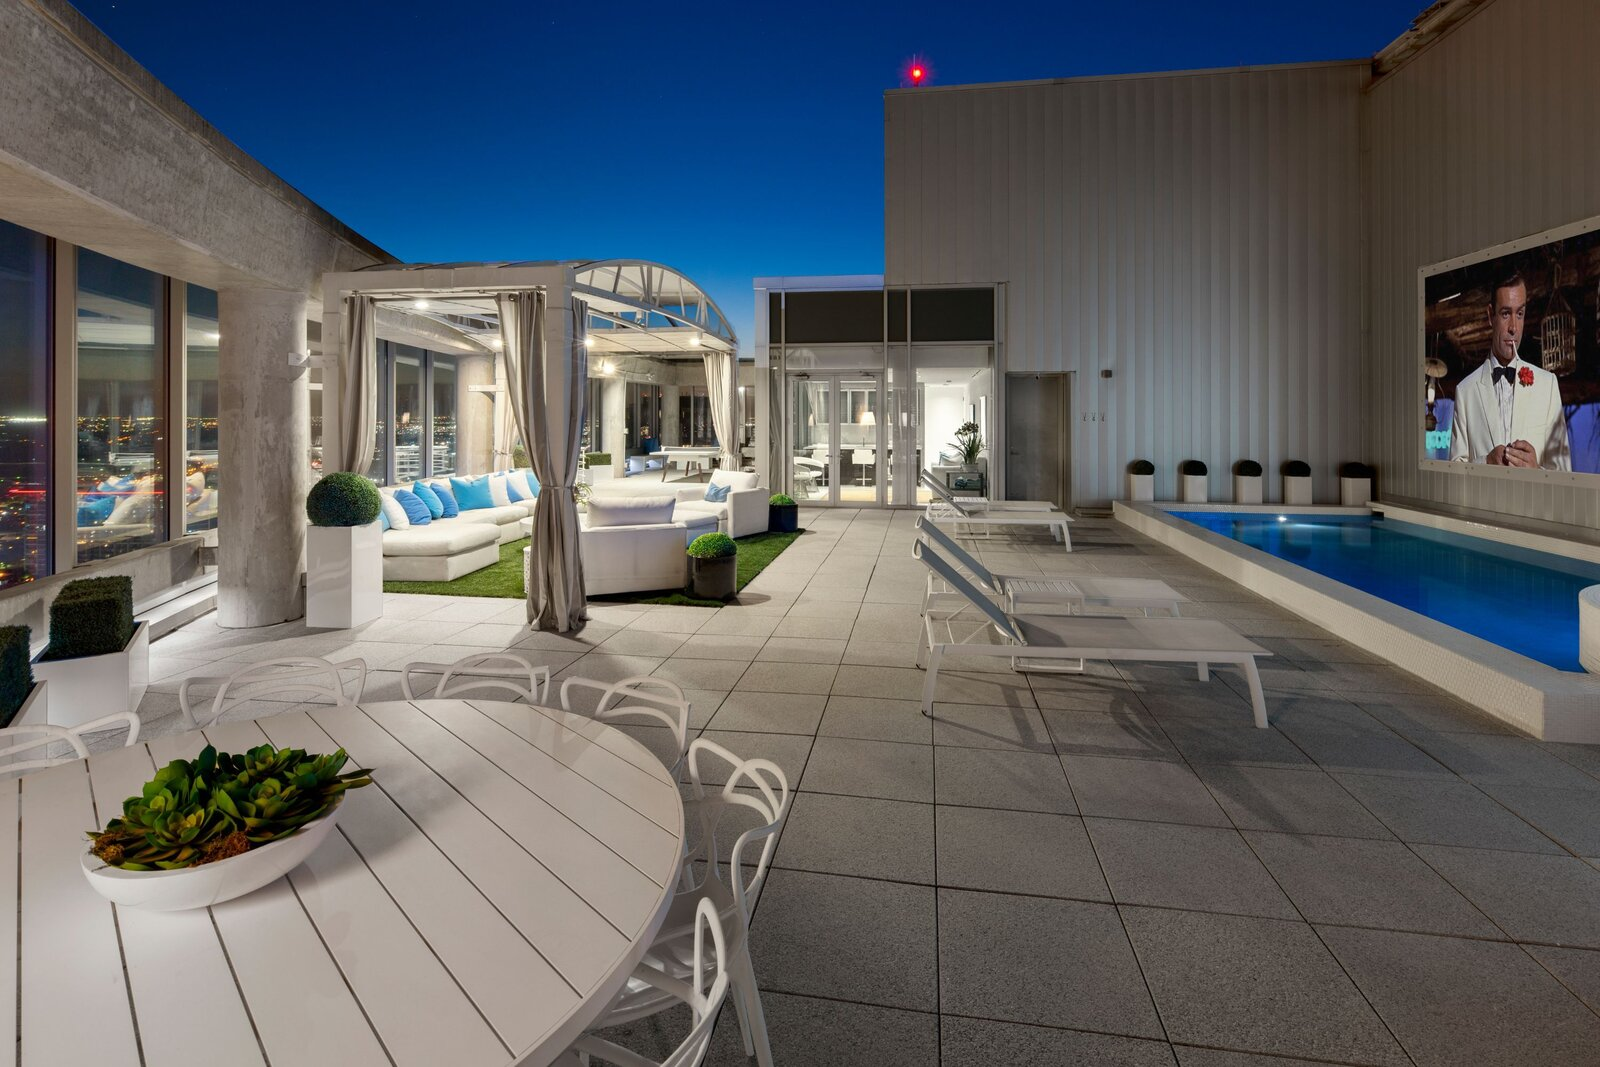 Photo 10 of 10 in An Indoor/Outdoor Penthouse With Downtown Dallas Views Wants $5.7M